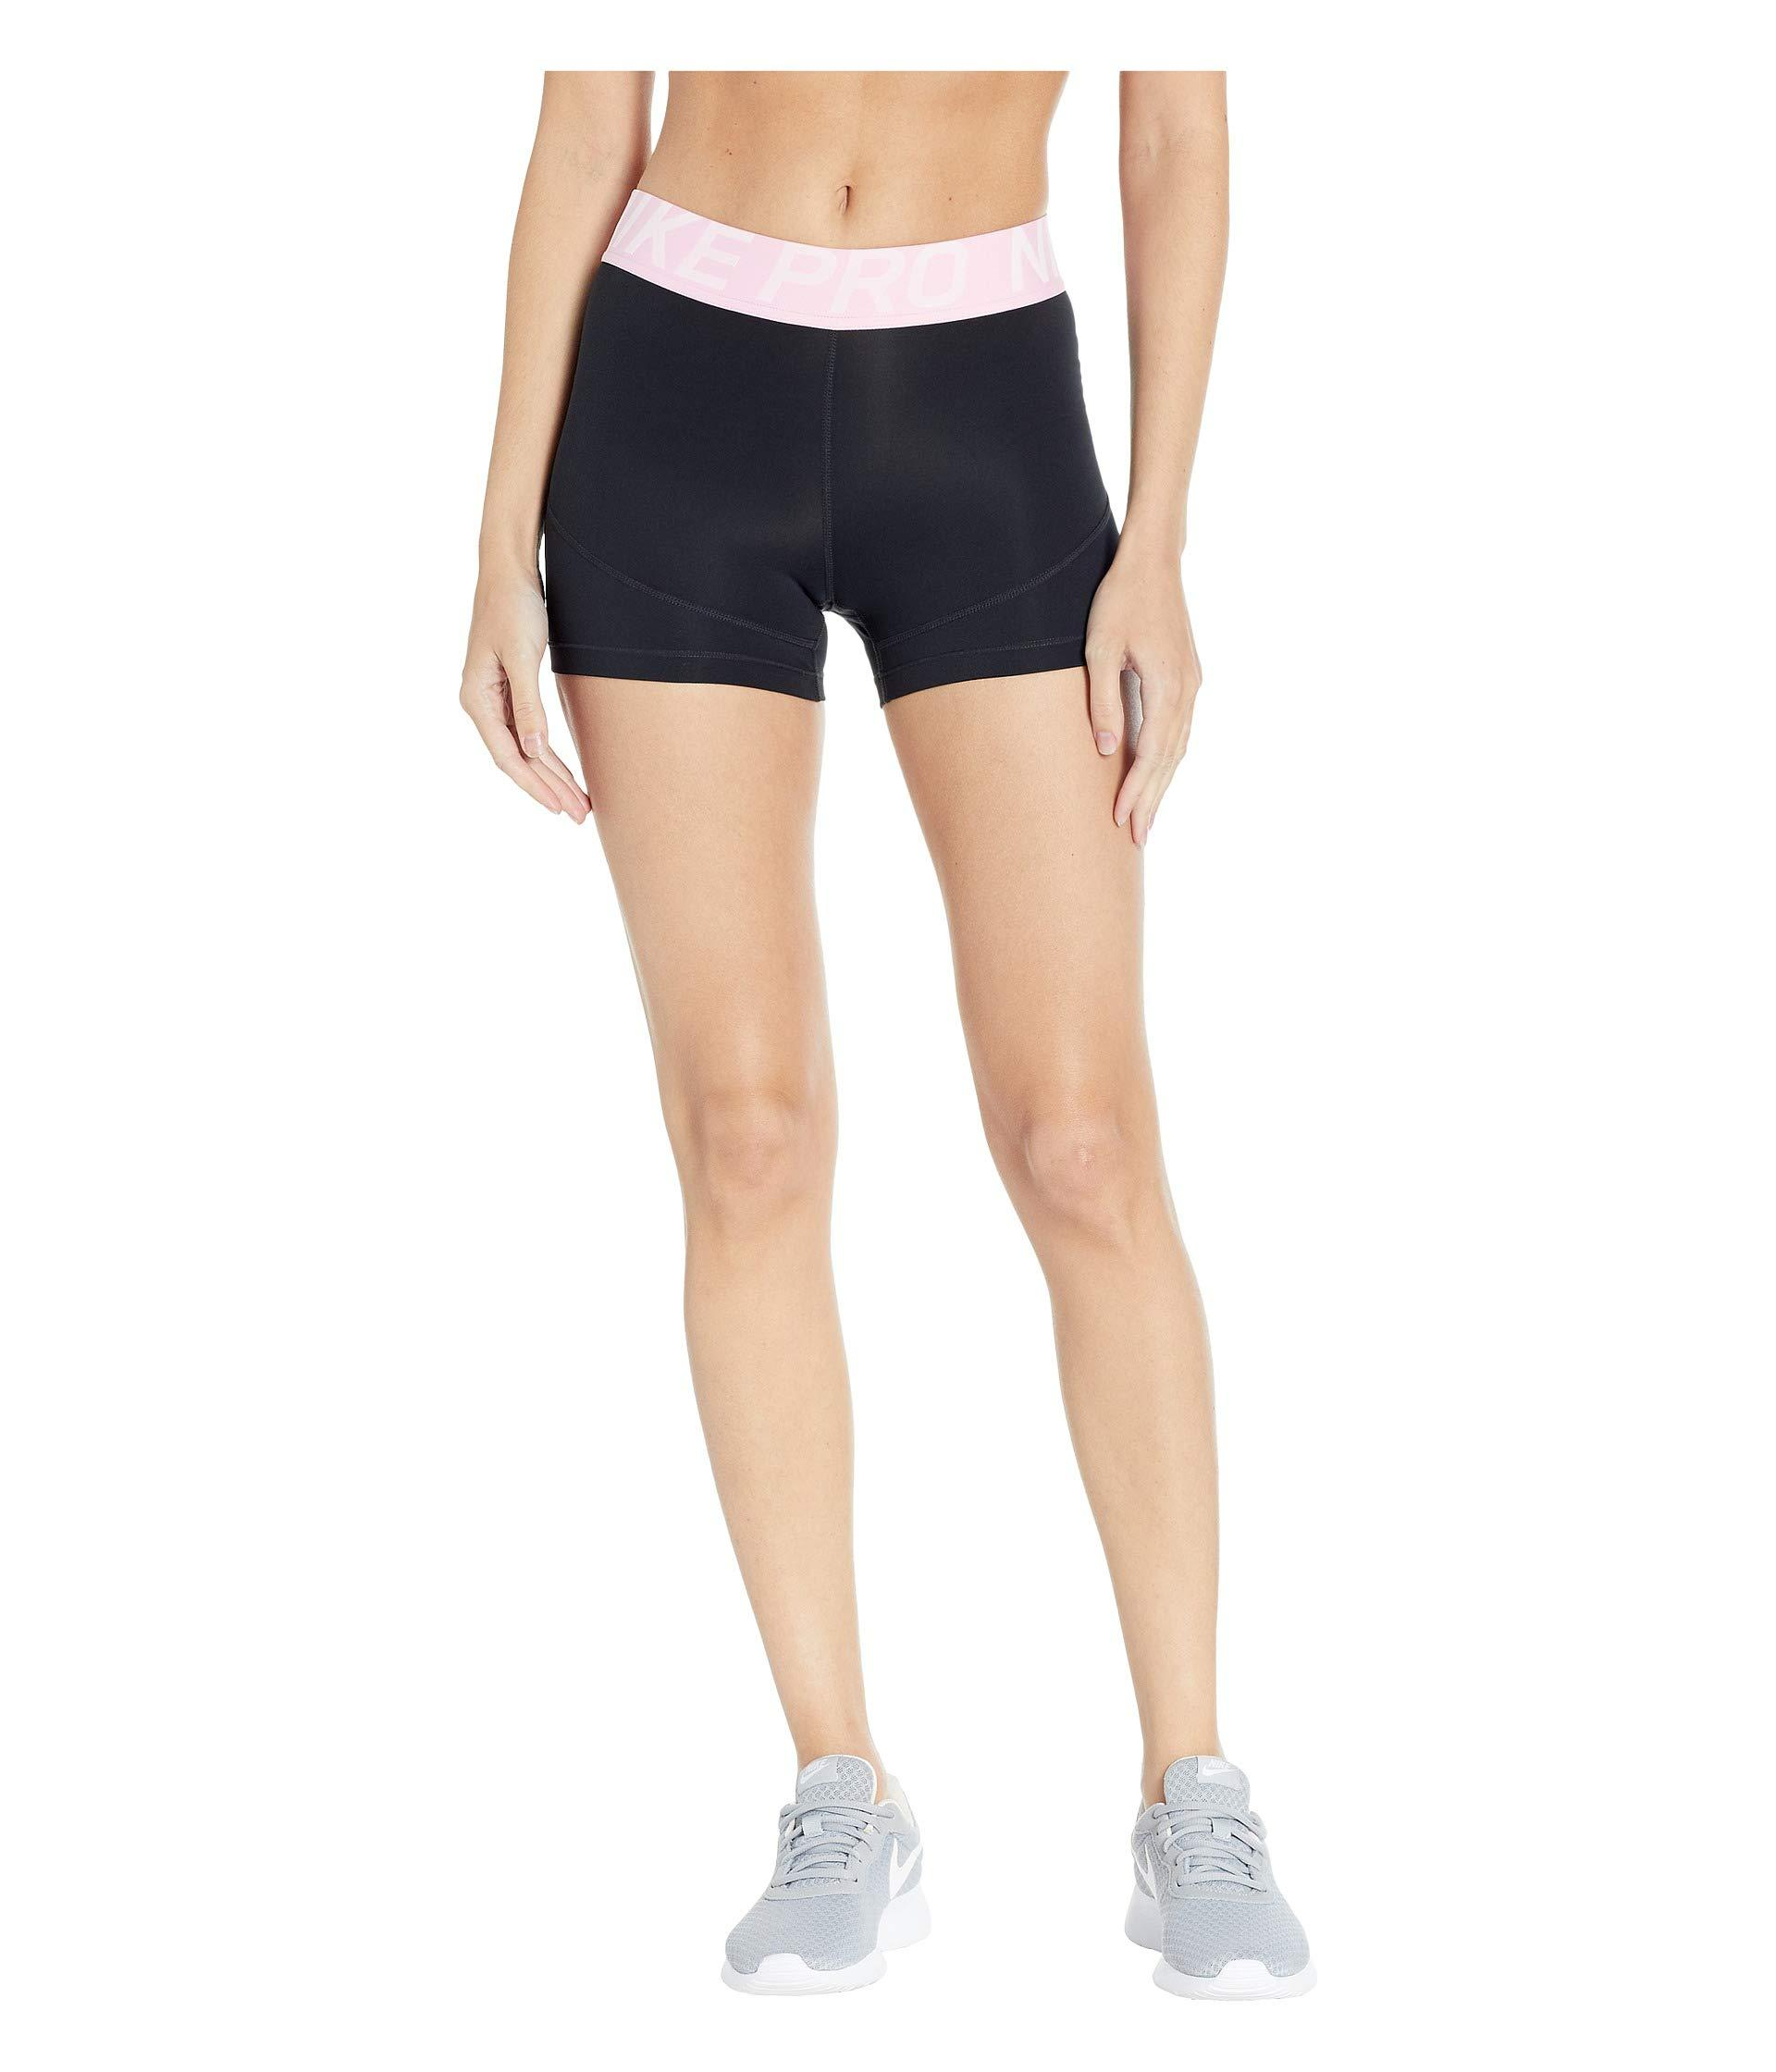 Tint Shorts 3 Nike blackteal Pro Black In Lyst Women's FqXaUw